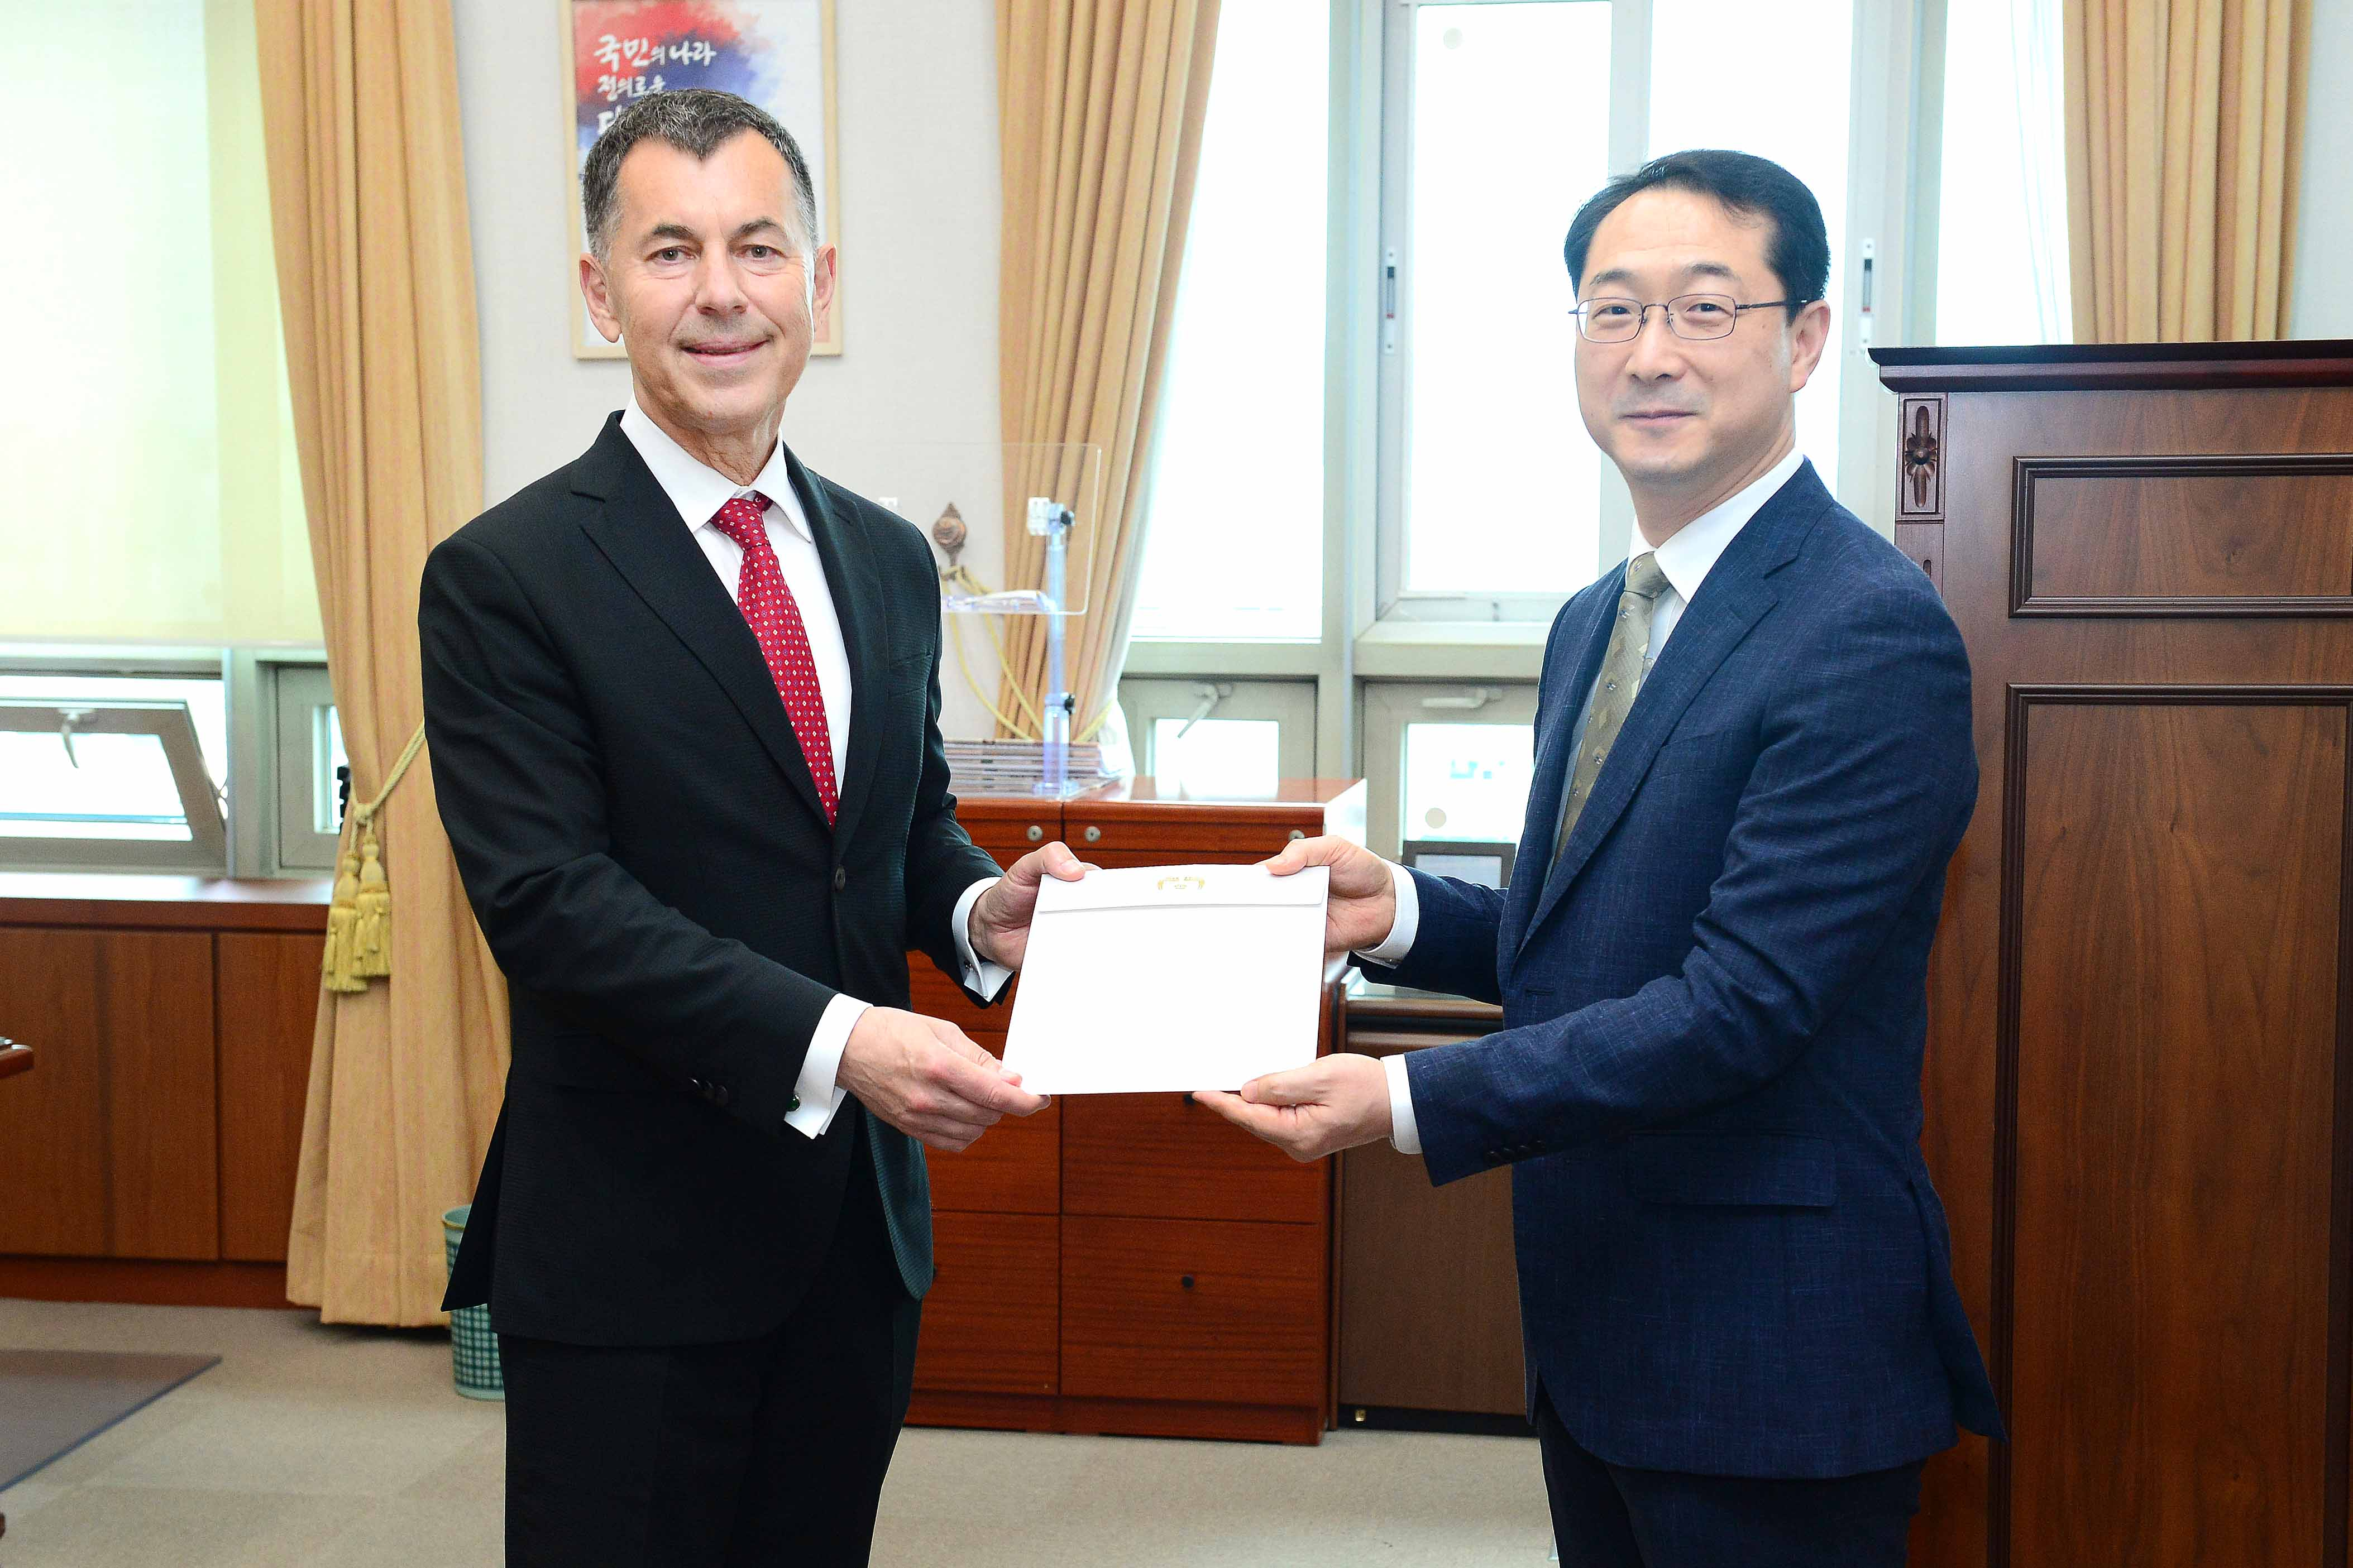 ROK and Czech Presidents Exchange Celebratory Letters to Mark 30th Anniversary of Establishment of Diplomatic Relations